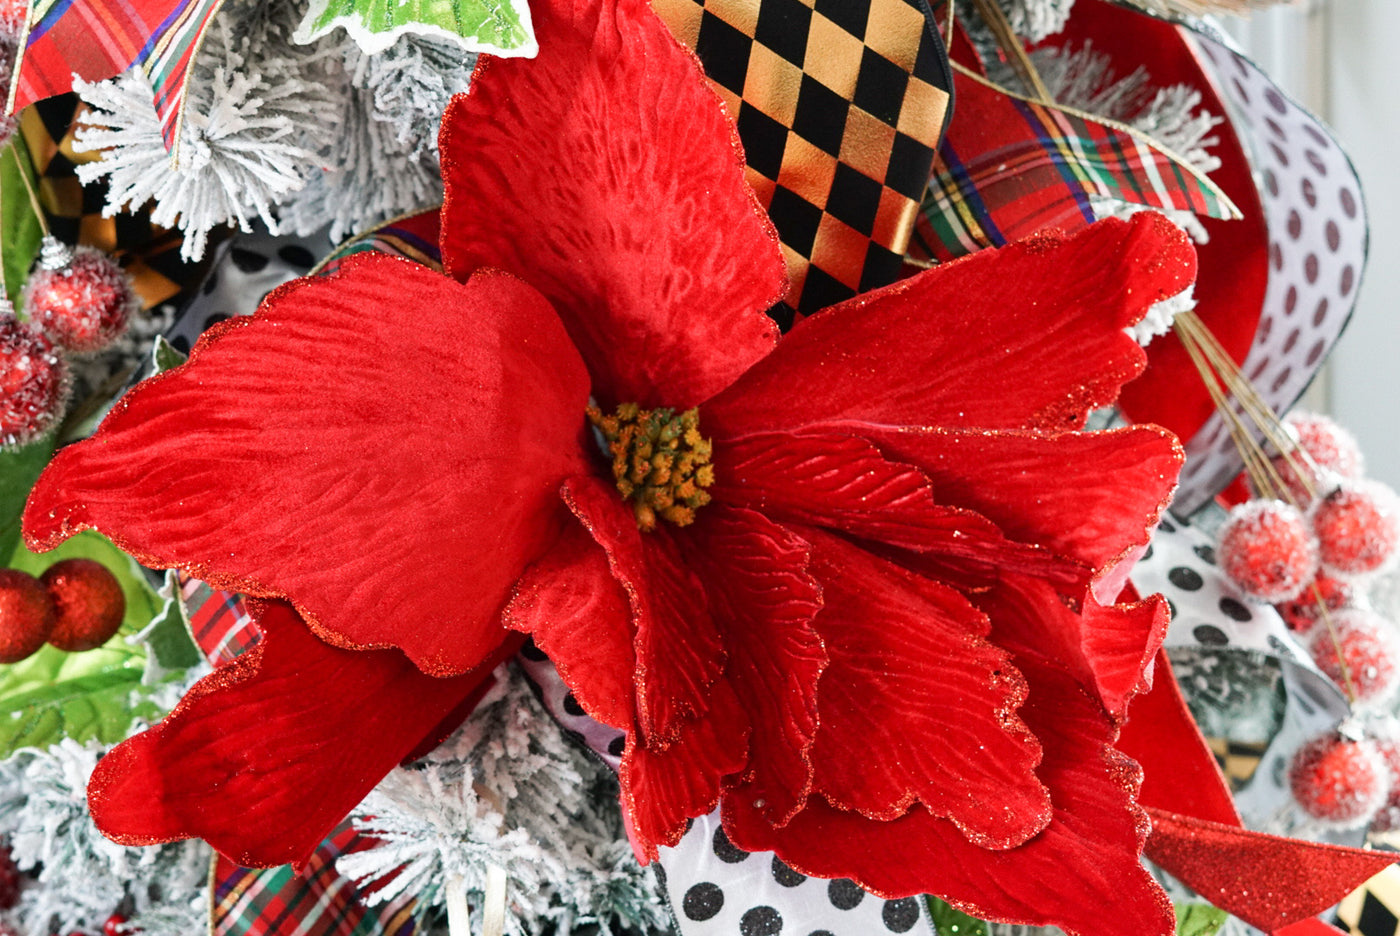 helloholidays,Super Large Poinsettia Pick,Regency,Spray